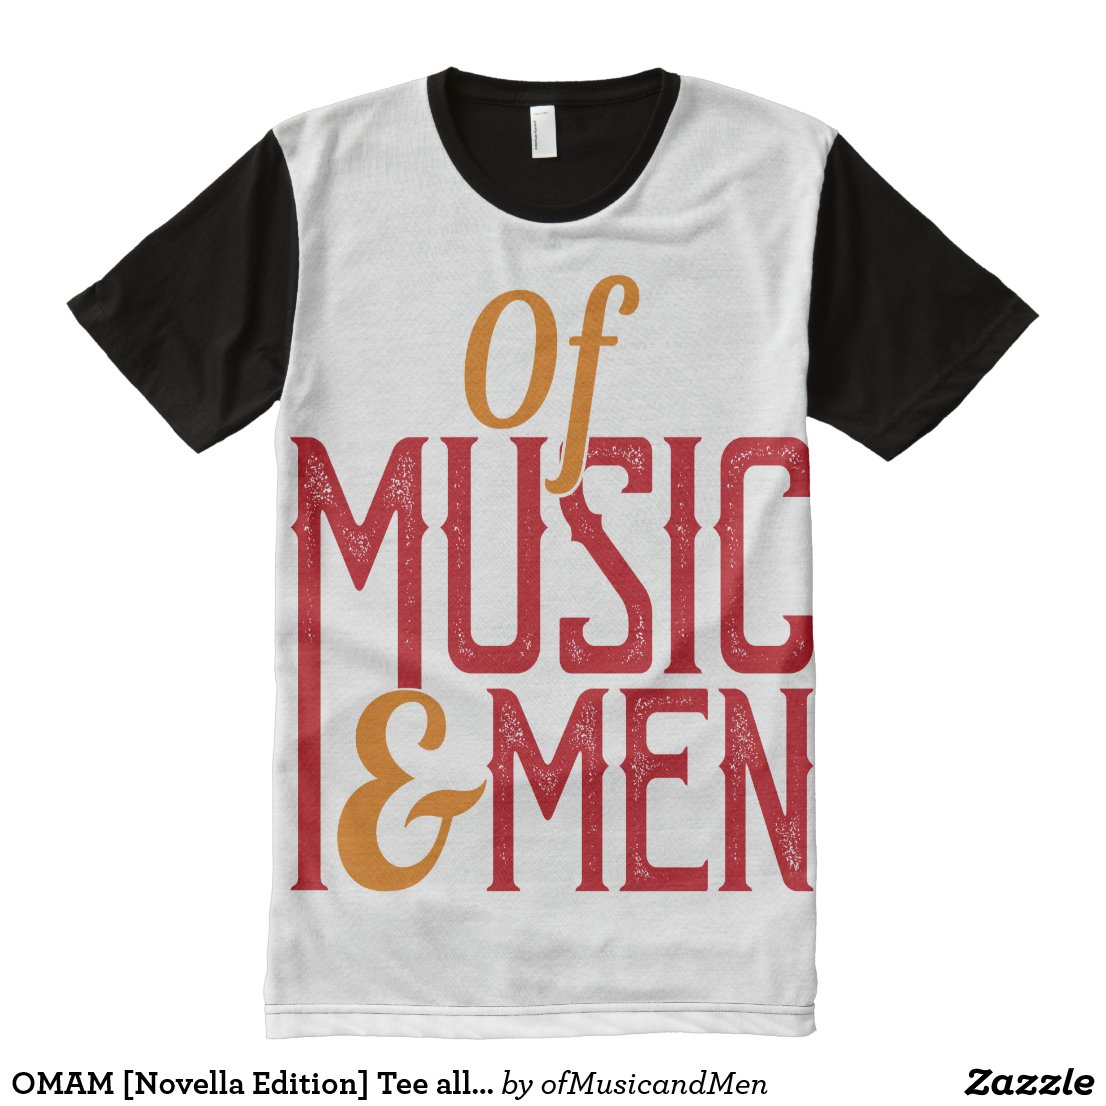 OMAM [Novella Edition] Tee all over